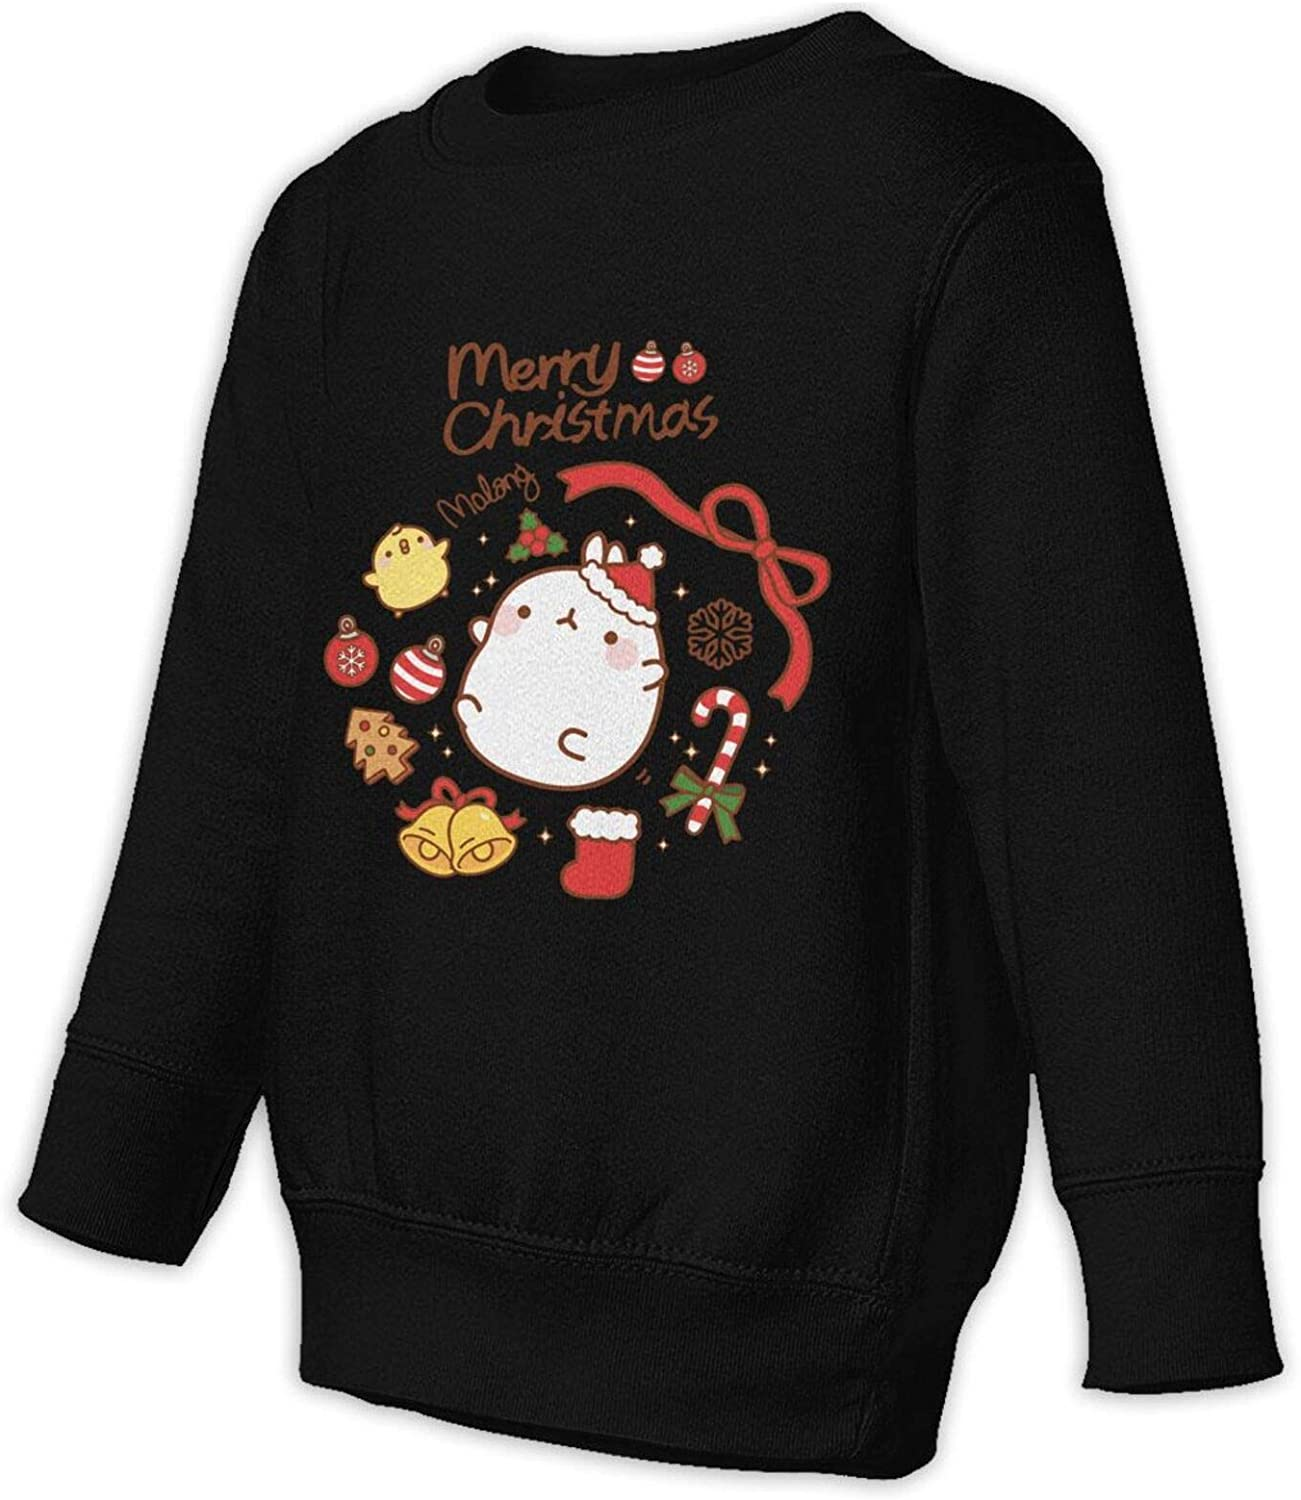 Thomasa Merry Christmas Kids Crew Neck Pullover Long Sleeve Sweater Hoodies Pullovers Sweatshirts Boys and Girl